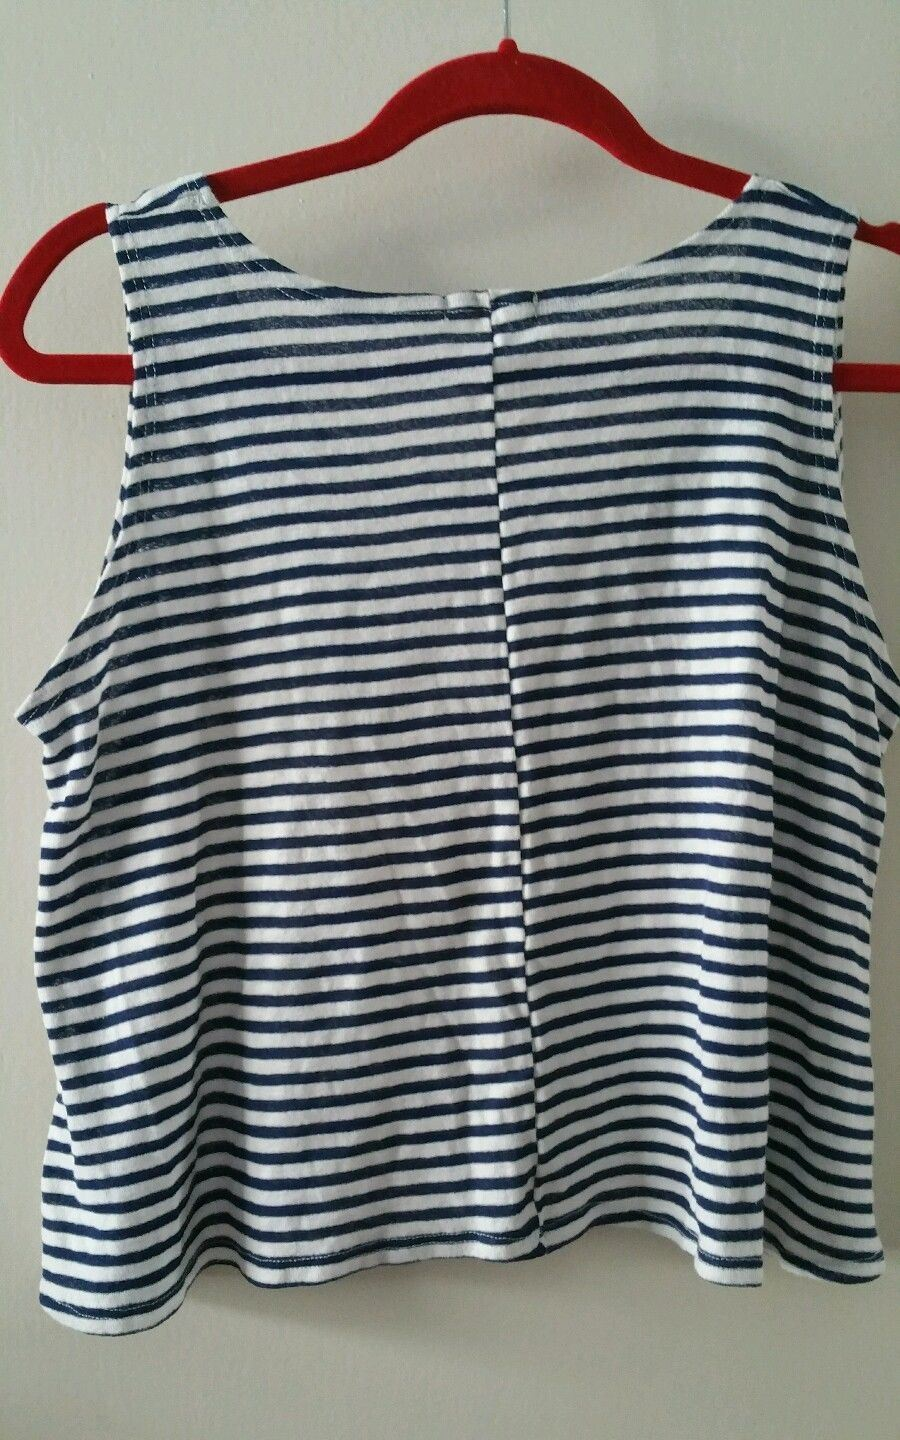 Tank Top Sailor Blue Stripes Red Anchor Cotton Size M NWOT